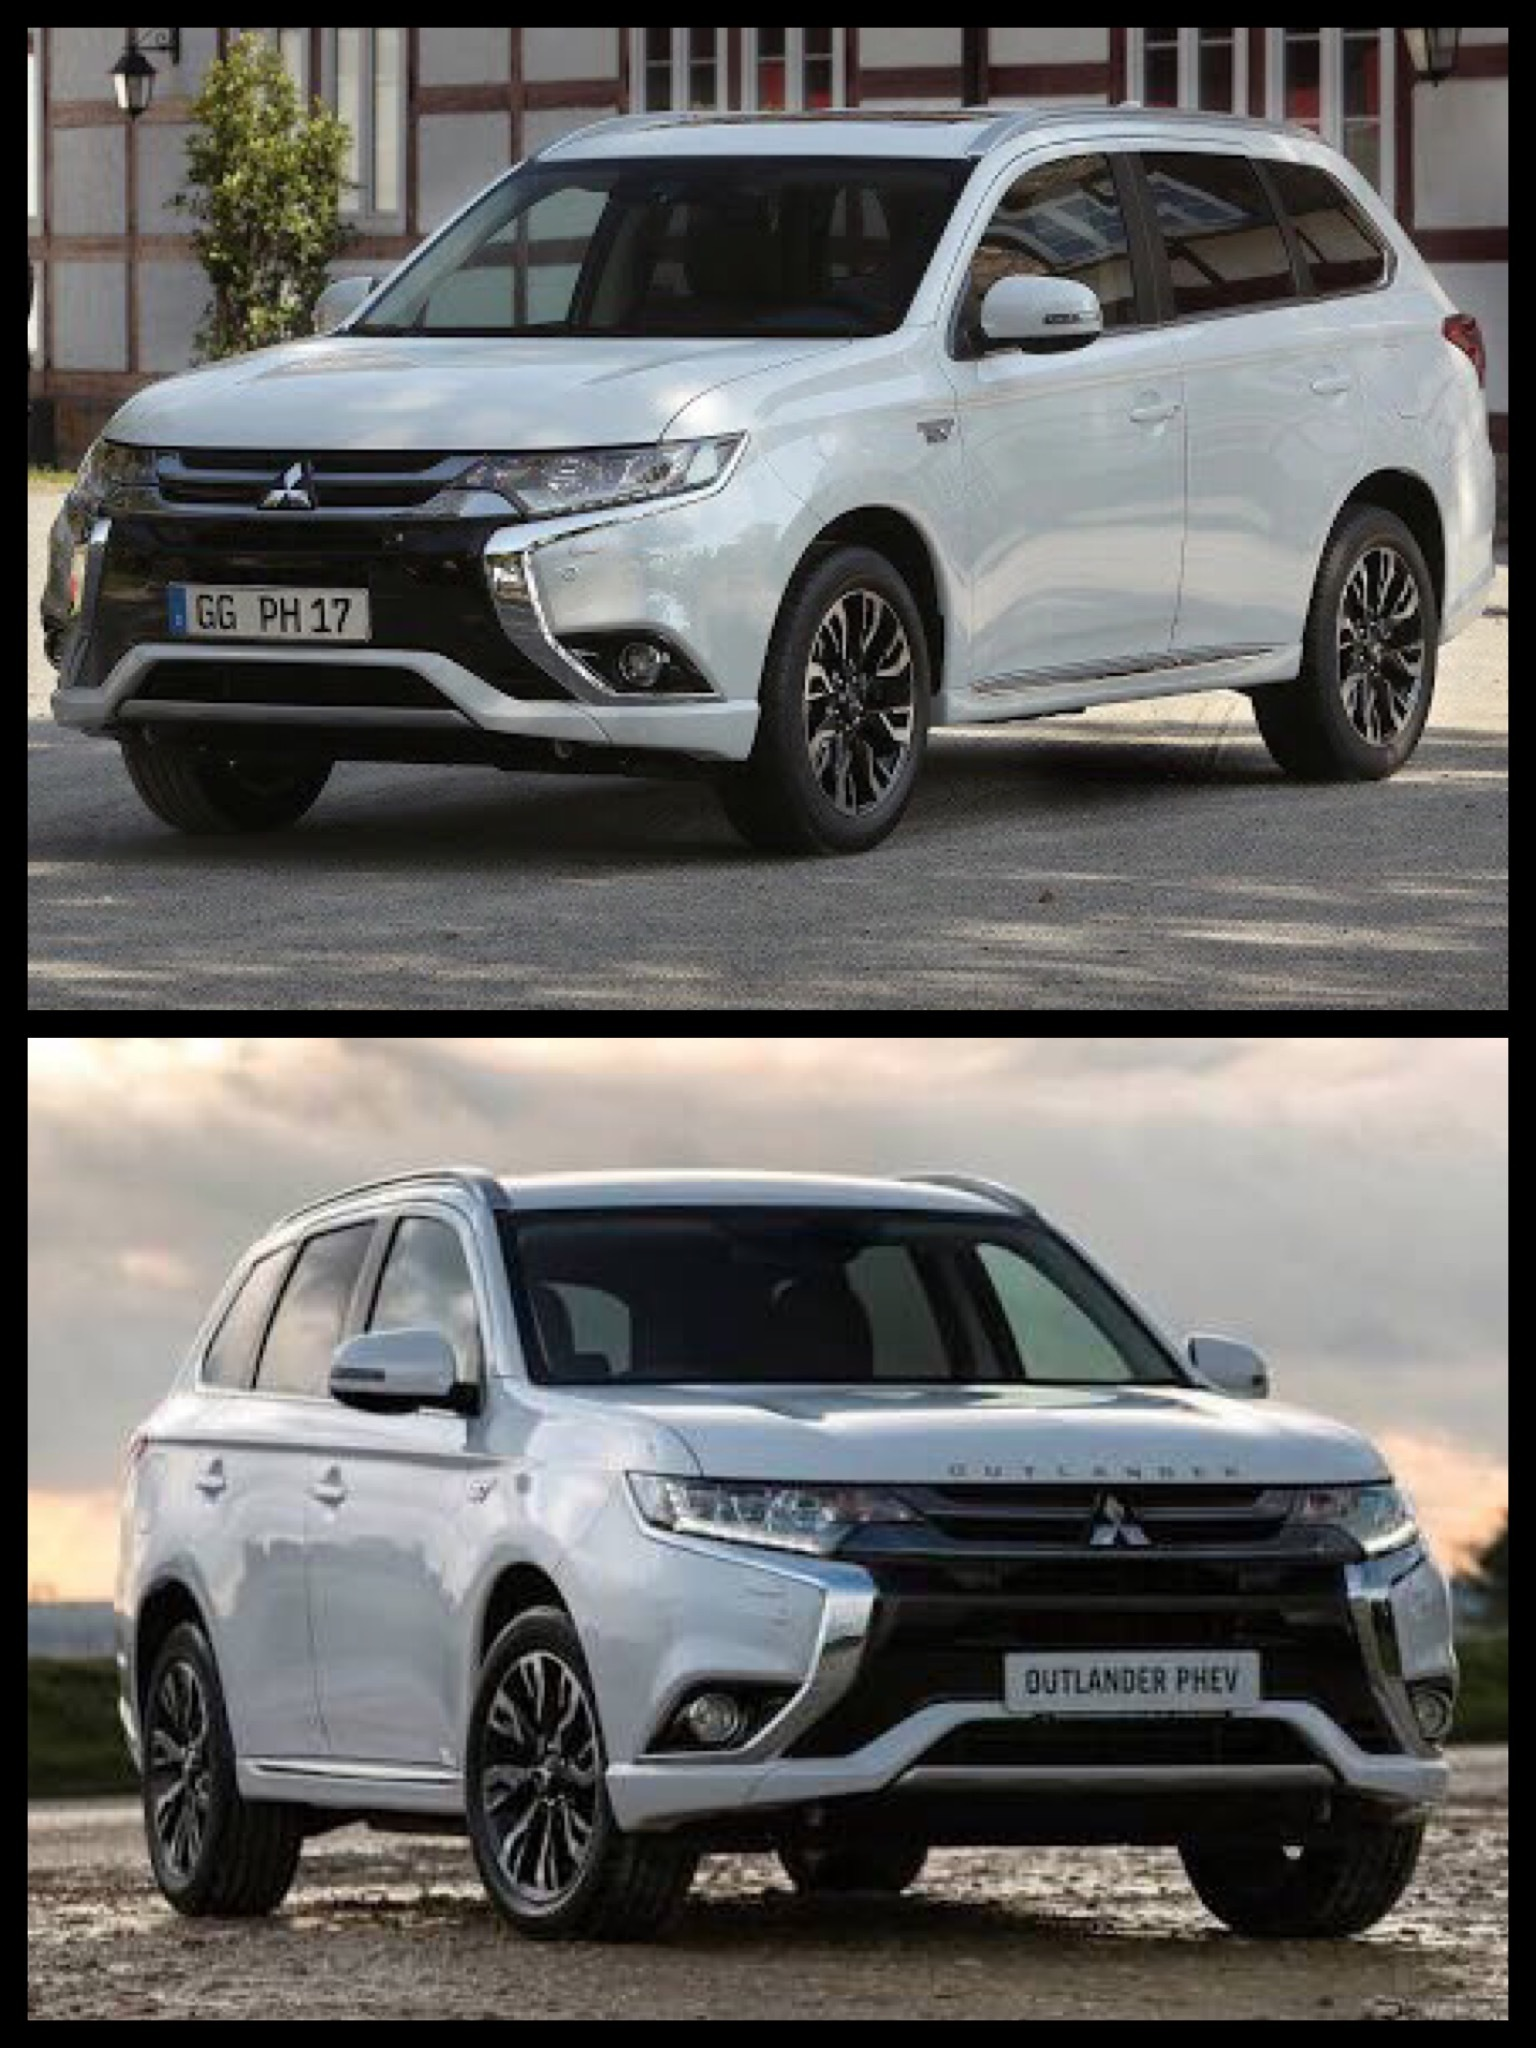 世界の三菱アウトランダーPHEV Mitsubishi Outlander PHEV in the world